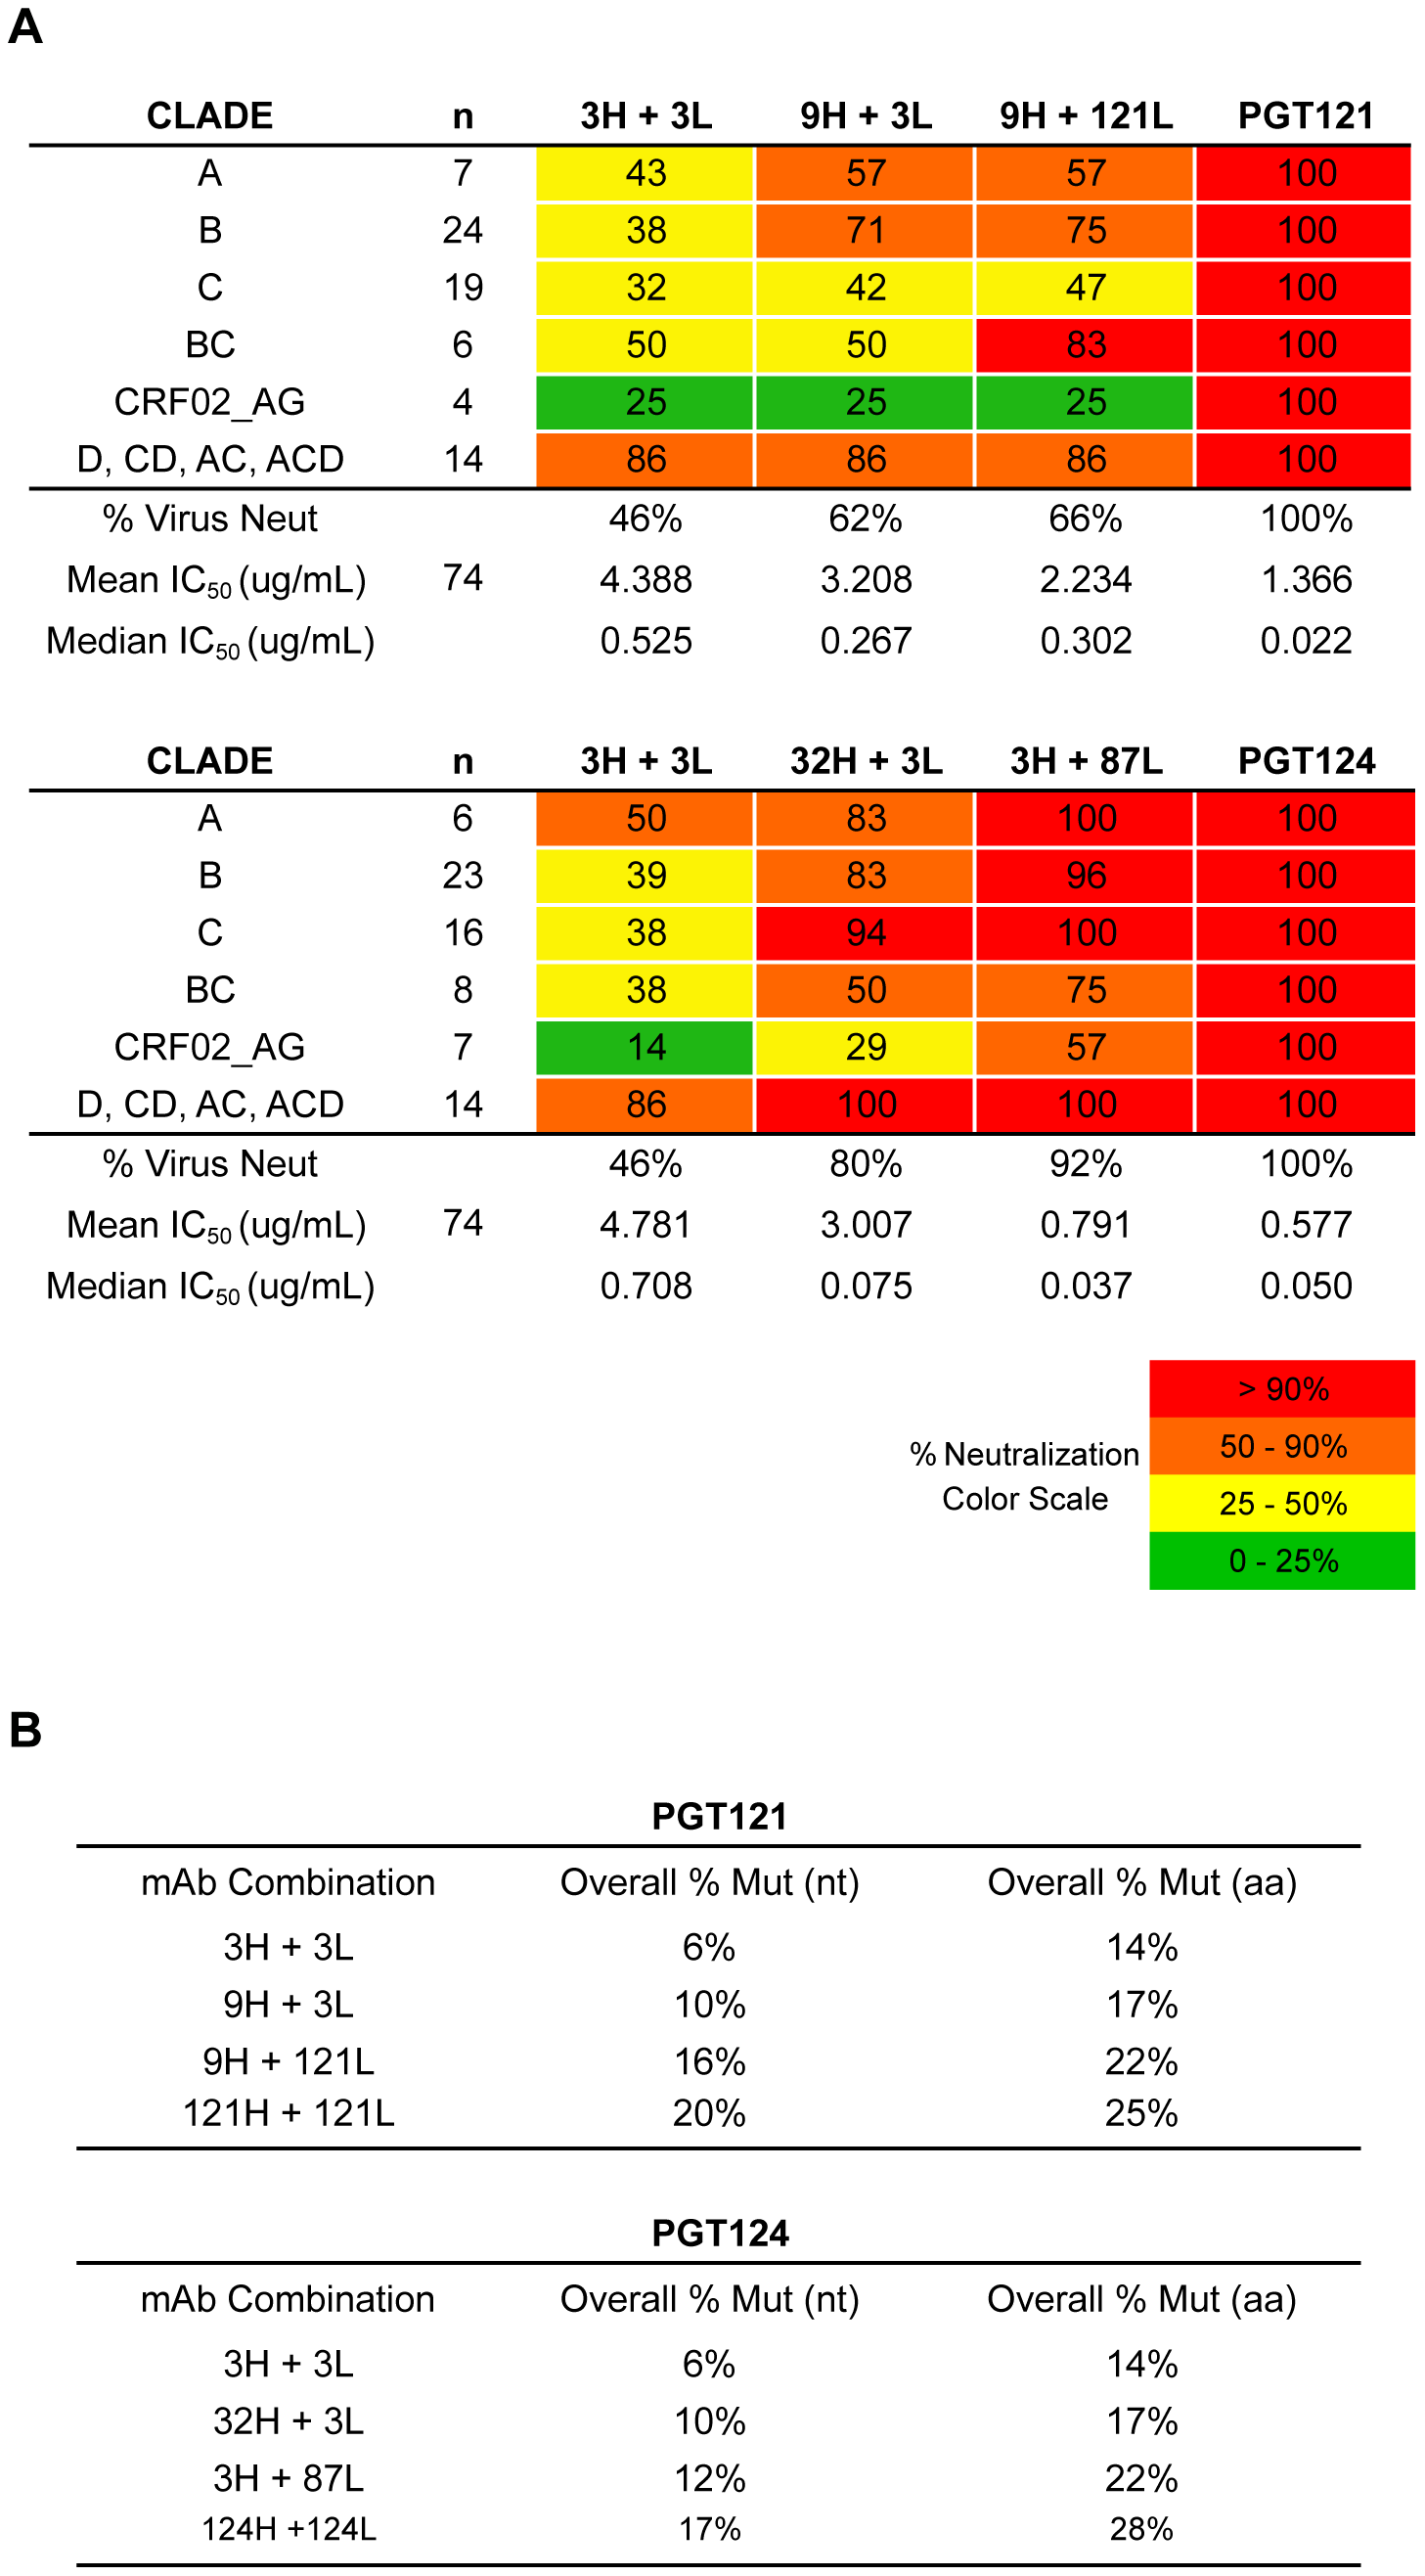 Higher levels of somatic hypermutation correlates with greater neutralization breadth and potency.